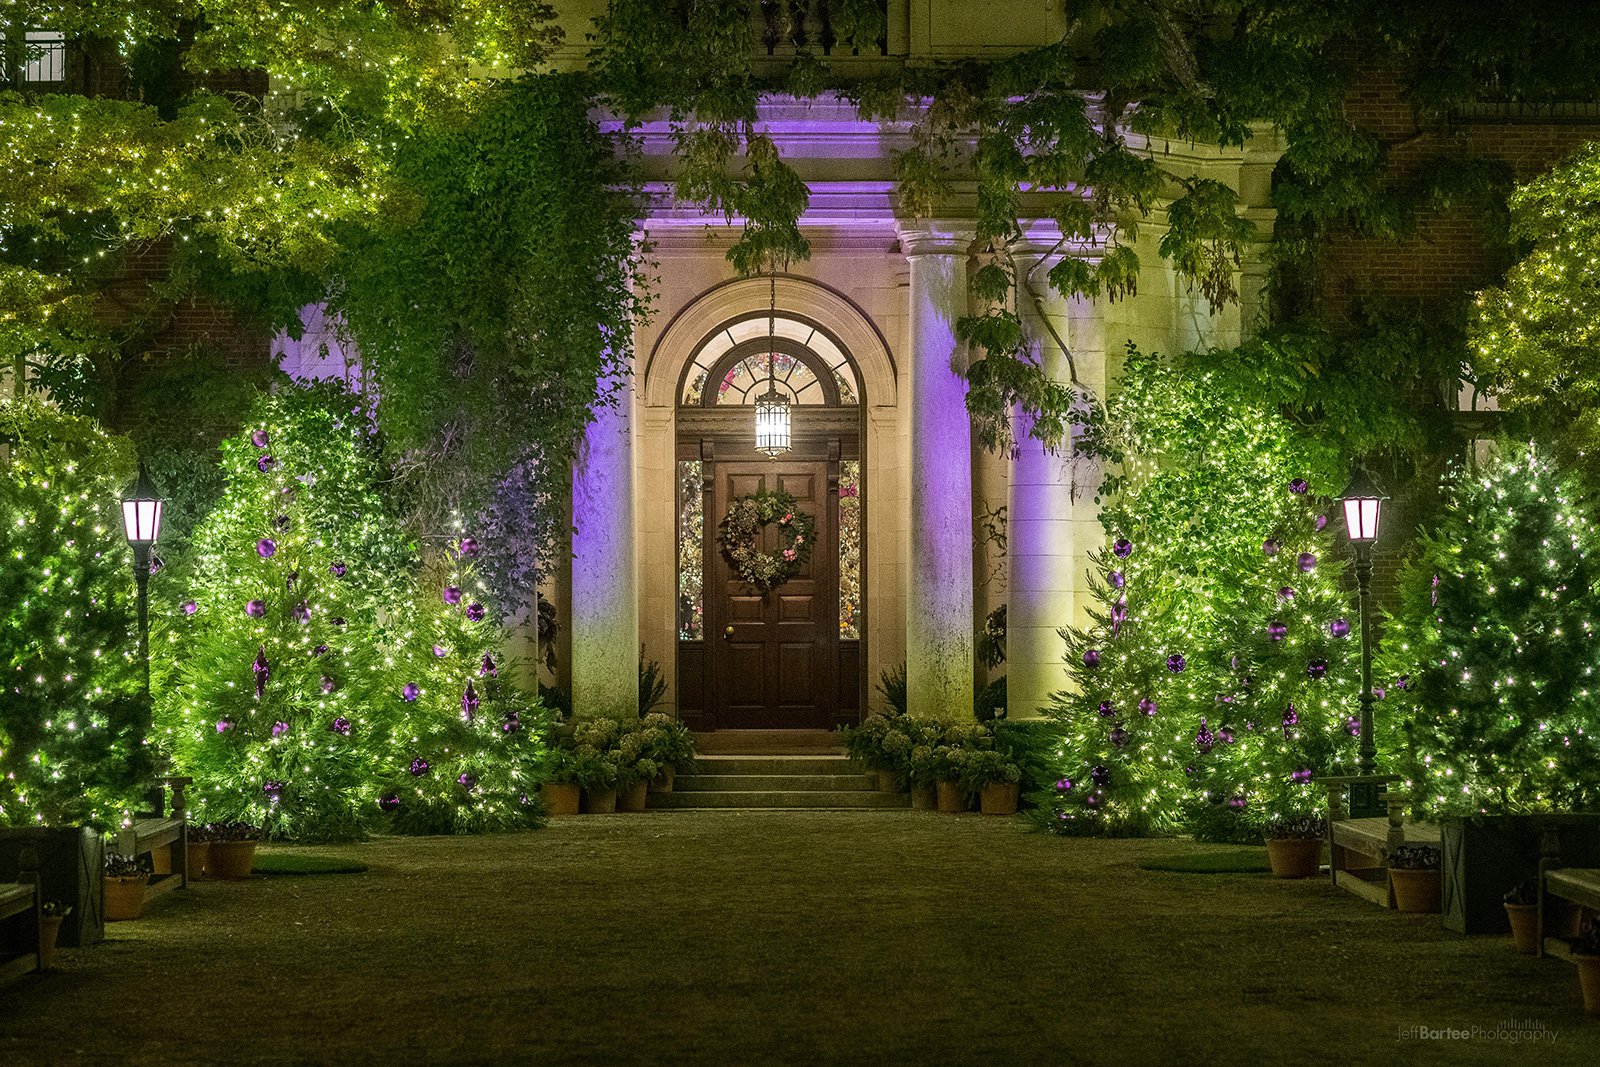 Gardenlights Frontofhouse (1)